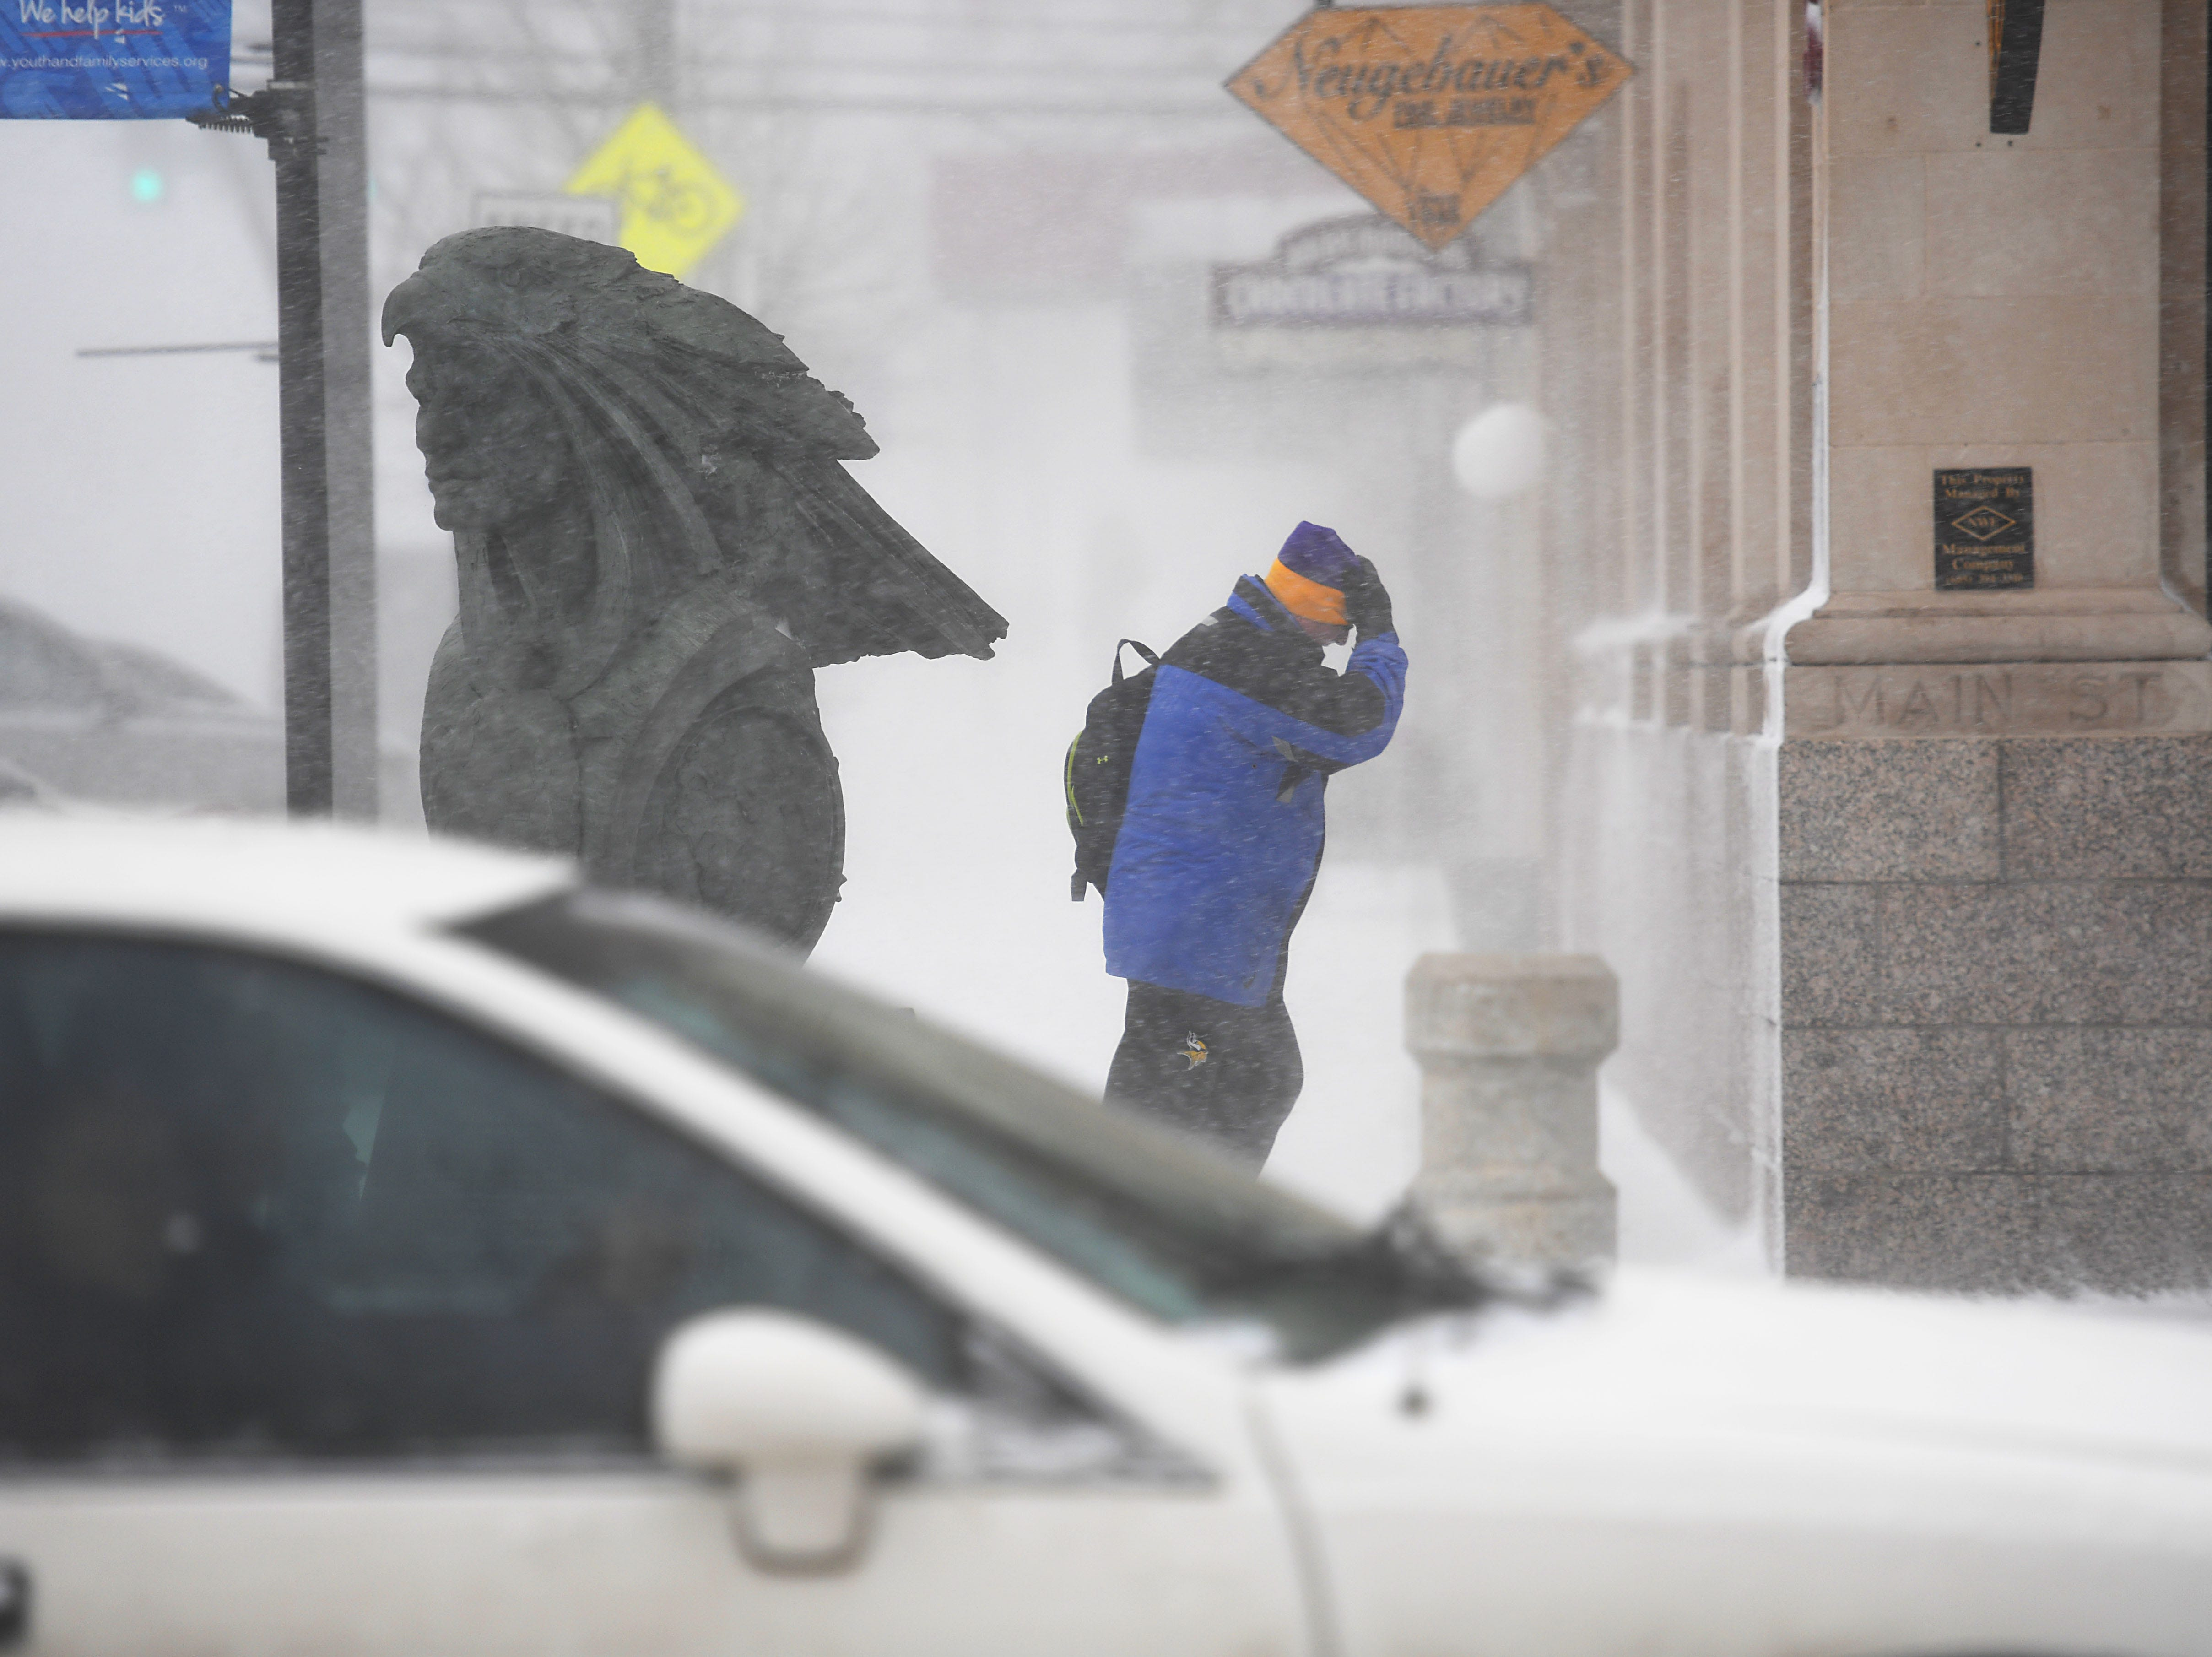 A pedestrian makes their way through downtown during a blizzard in Rapid City Wednesday, March 13, in Rapid City, S.D.